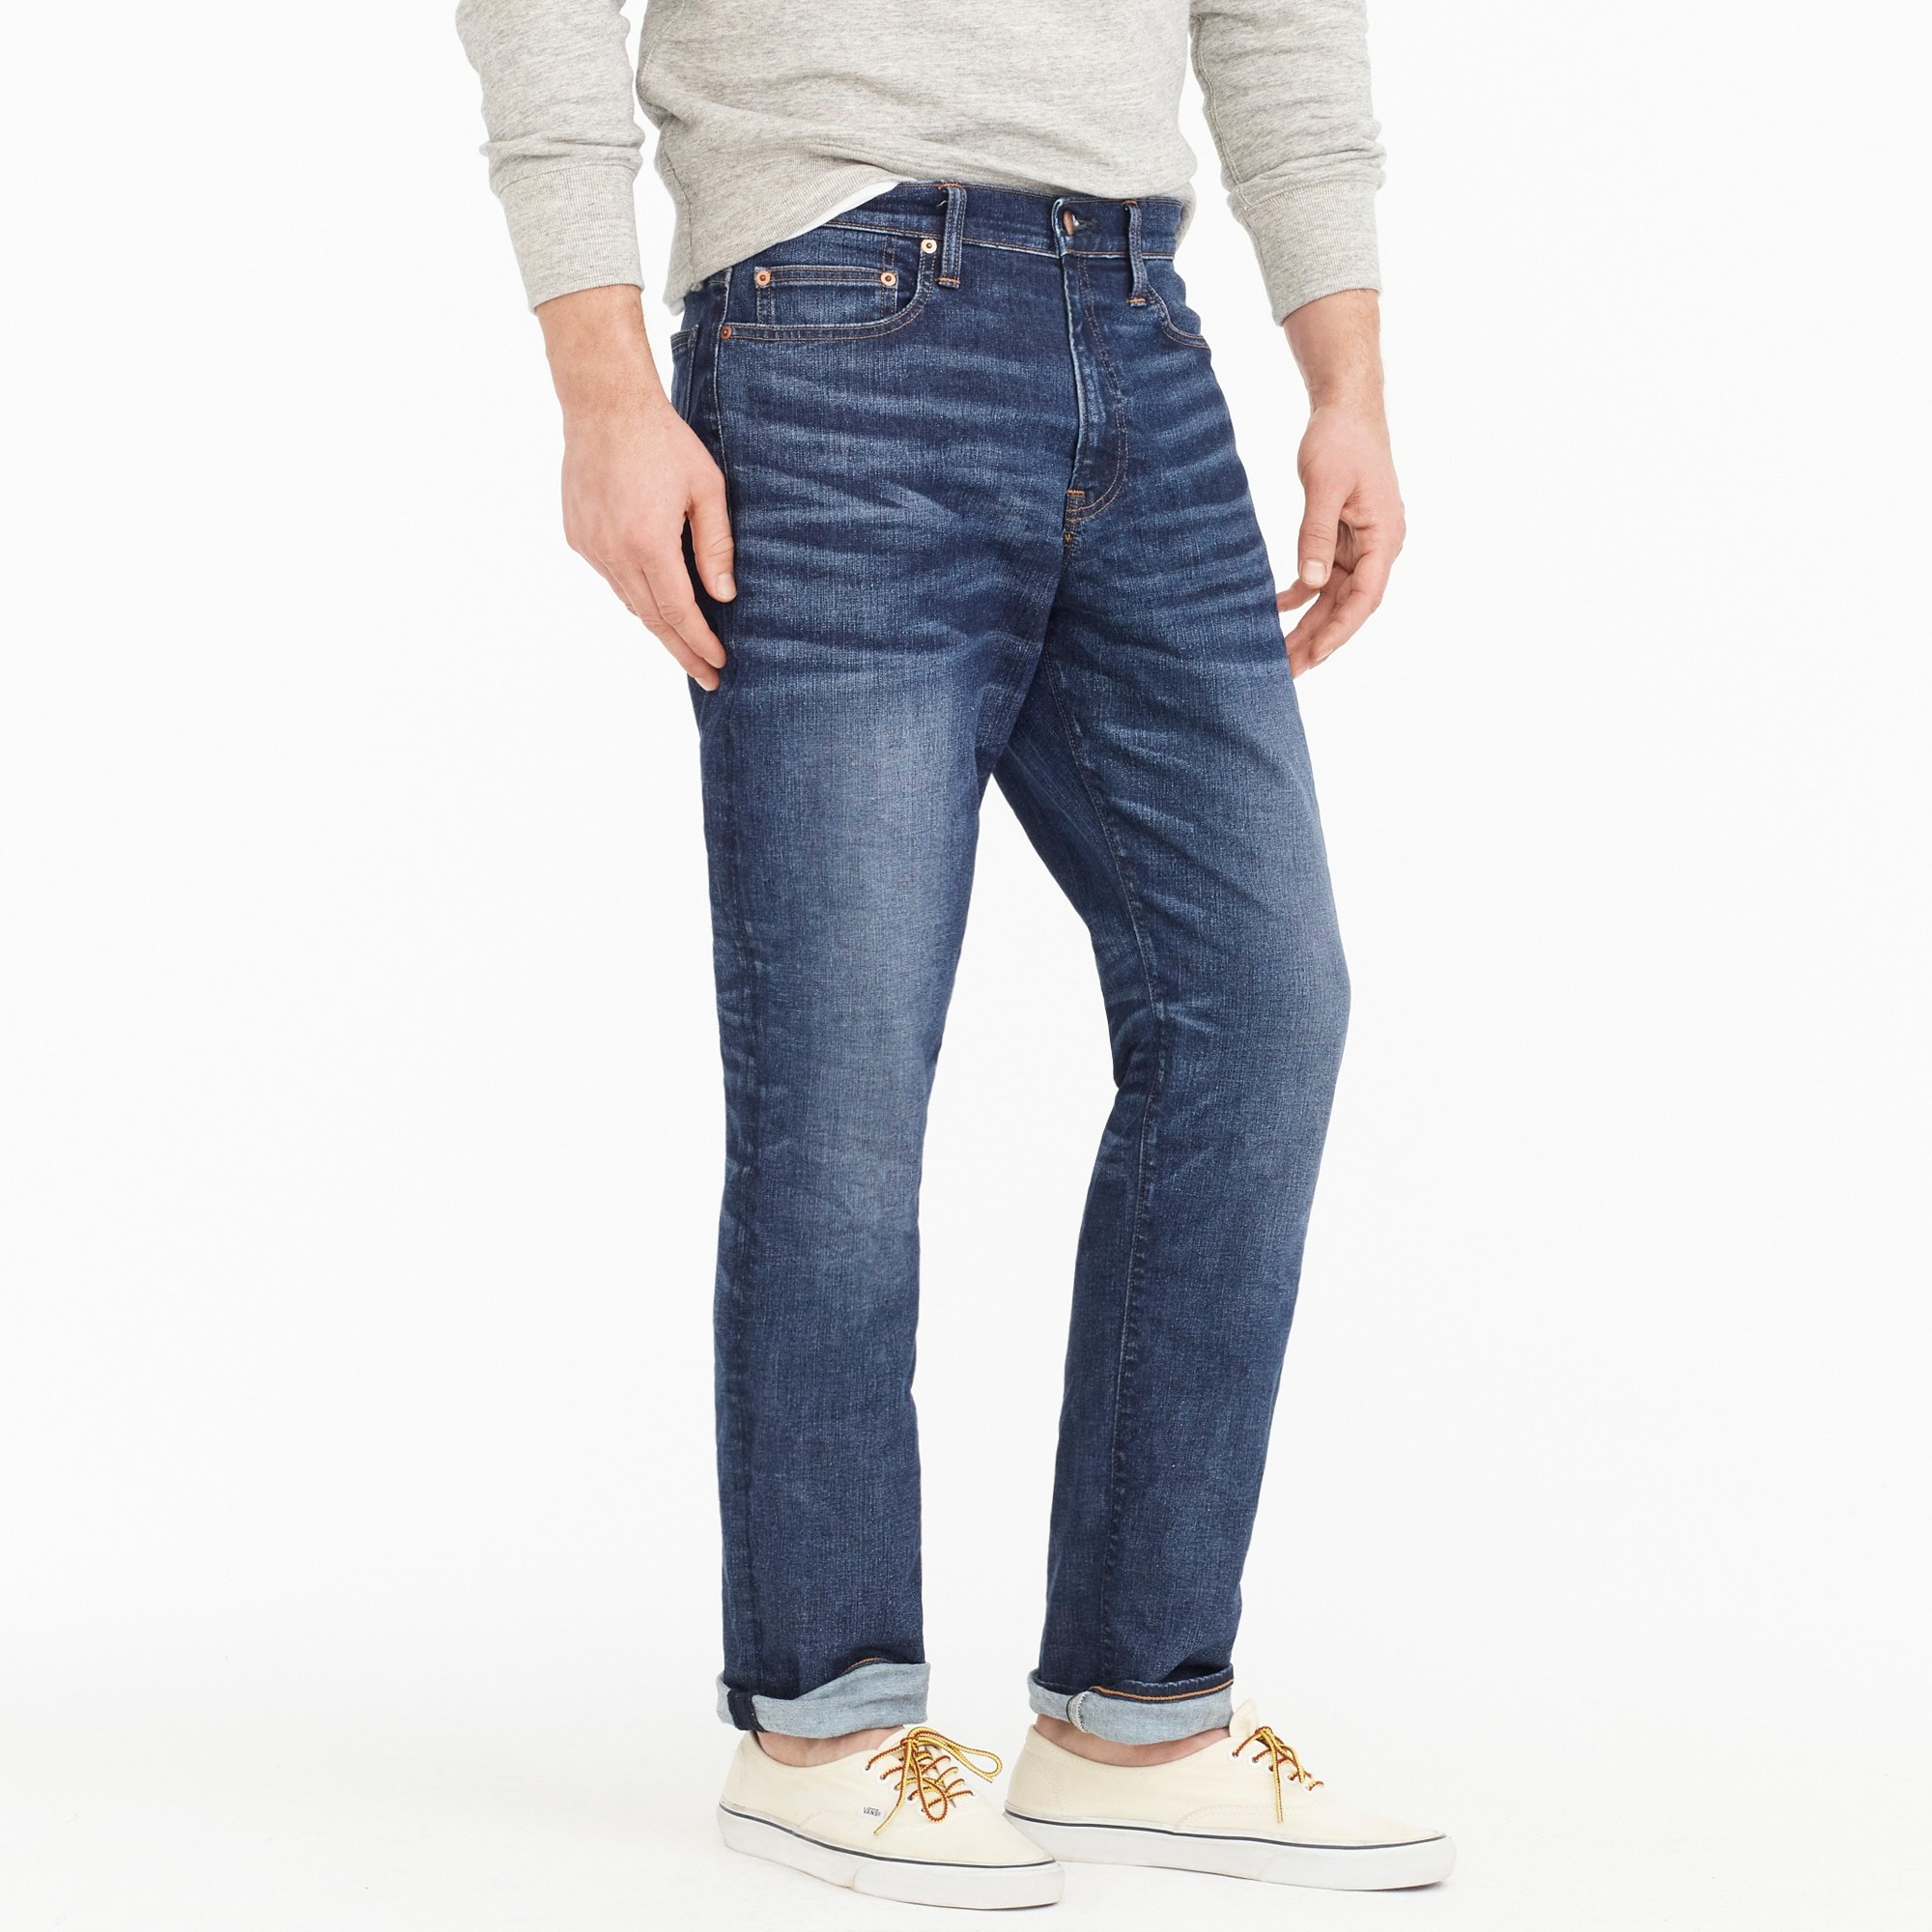 1040 Athletic-fit stretch jean in Dalton wash